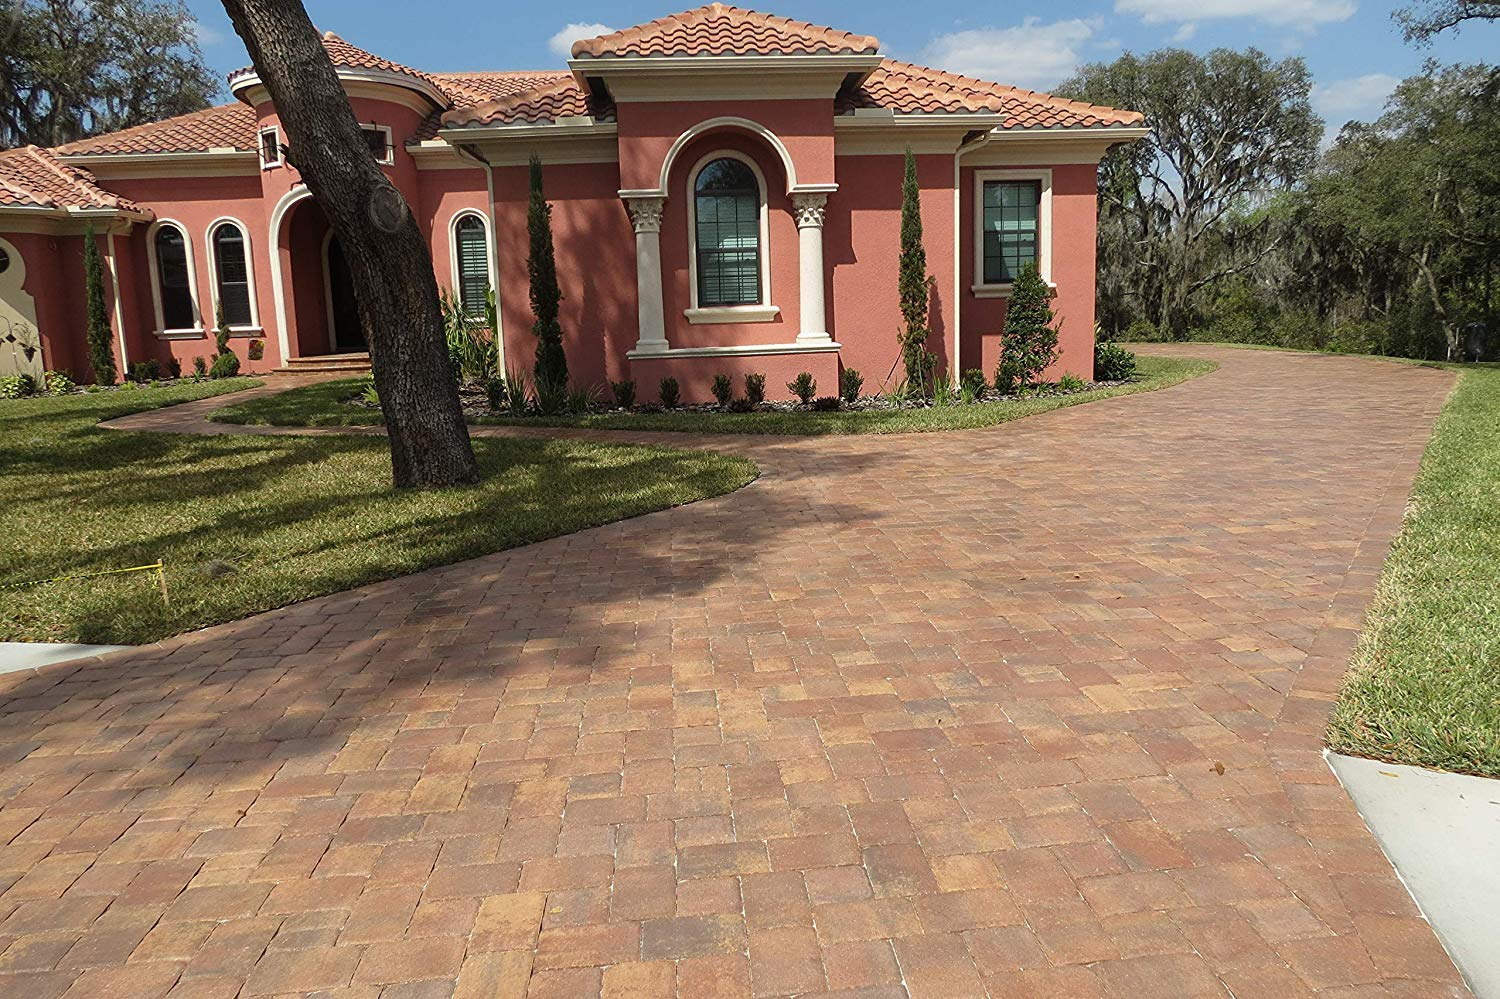 5 Gallon DOMINATOR NG+, No Gloss Paver Sealer (Wet Look), Commercial Grade, Water Based, Color Enhancing, Easy Application by DOMINATOR (Image #4)